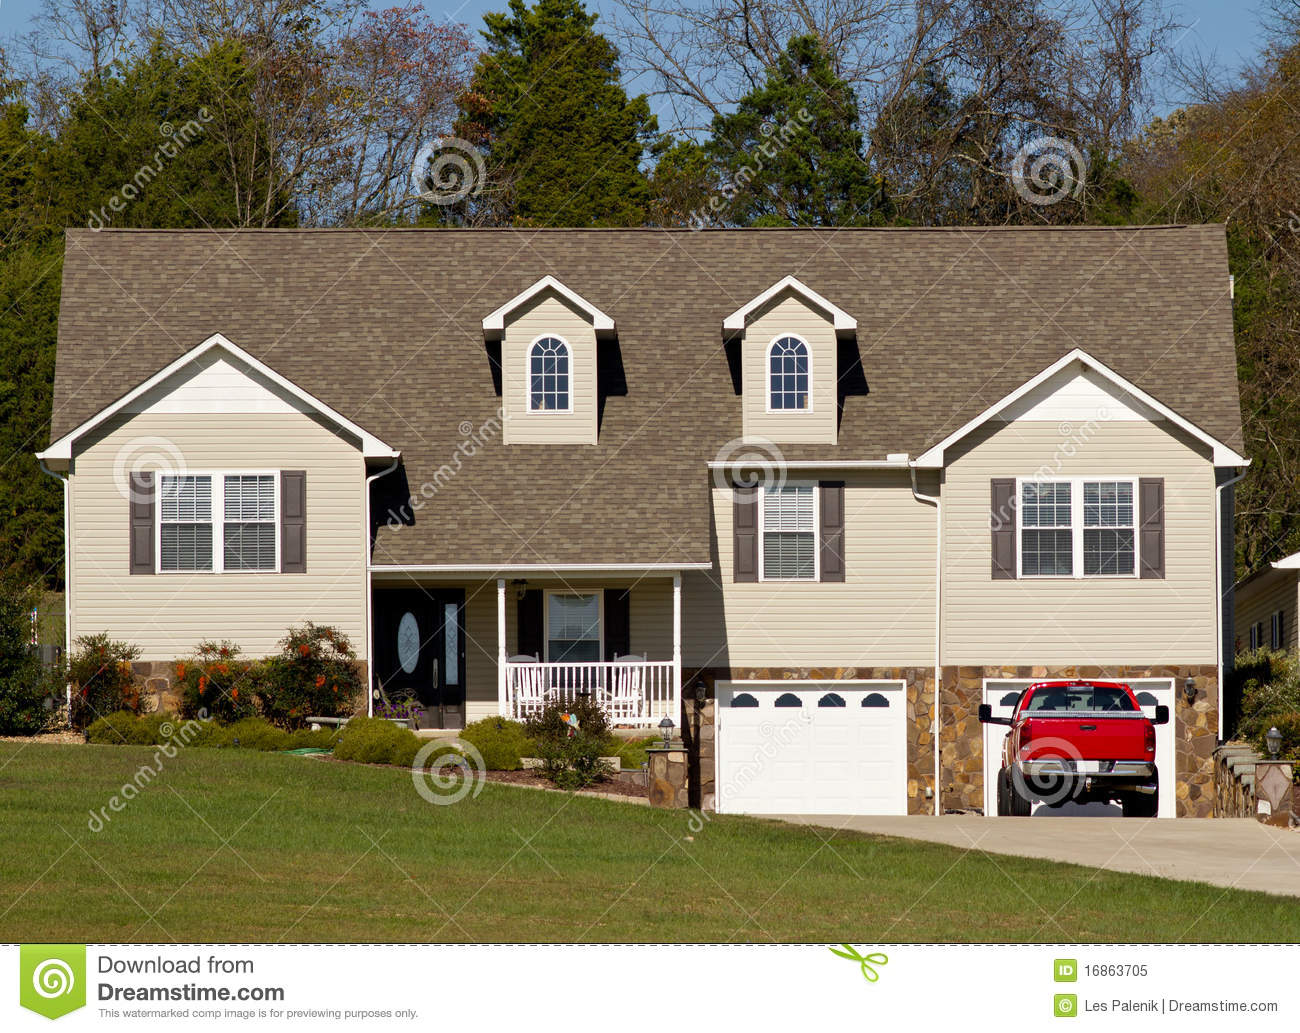 House in the country royalty free stock photo image for Country house online